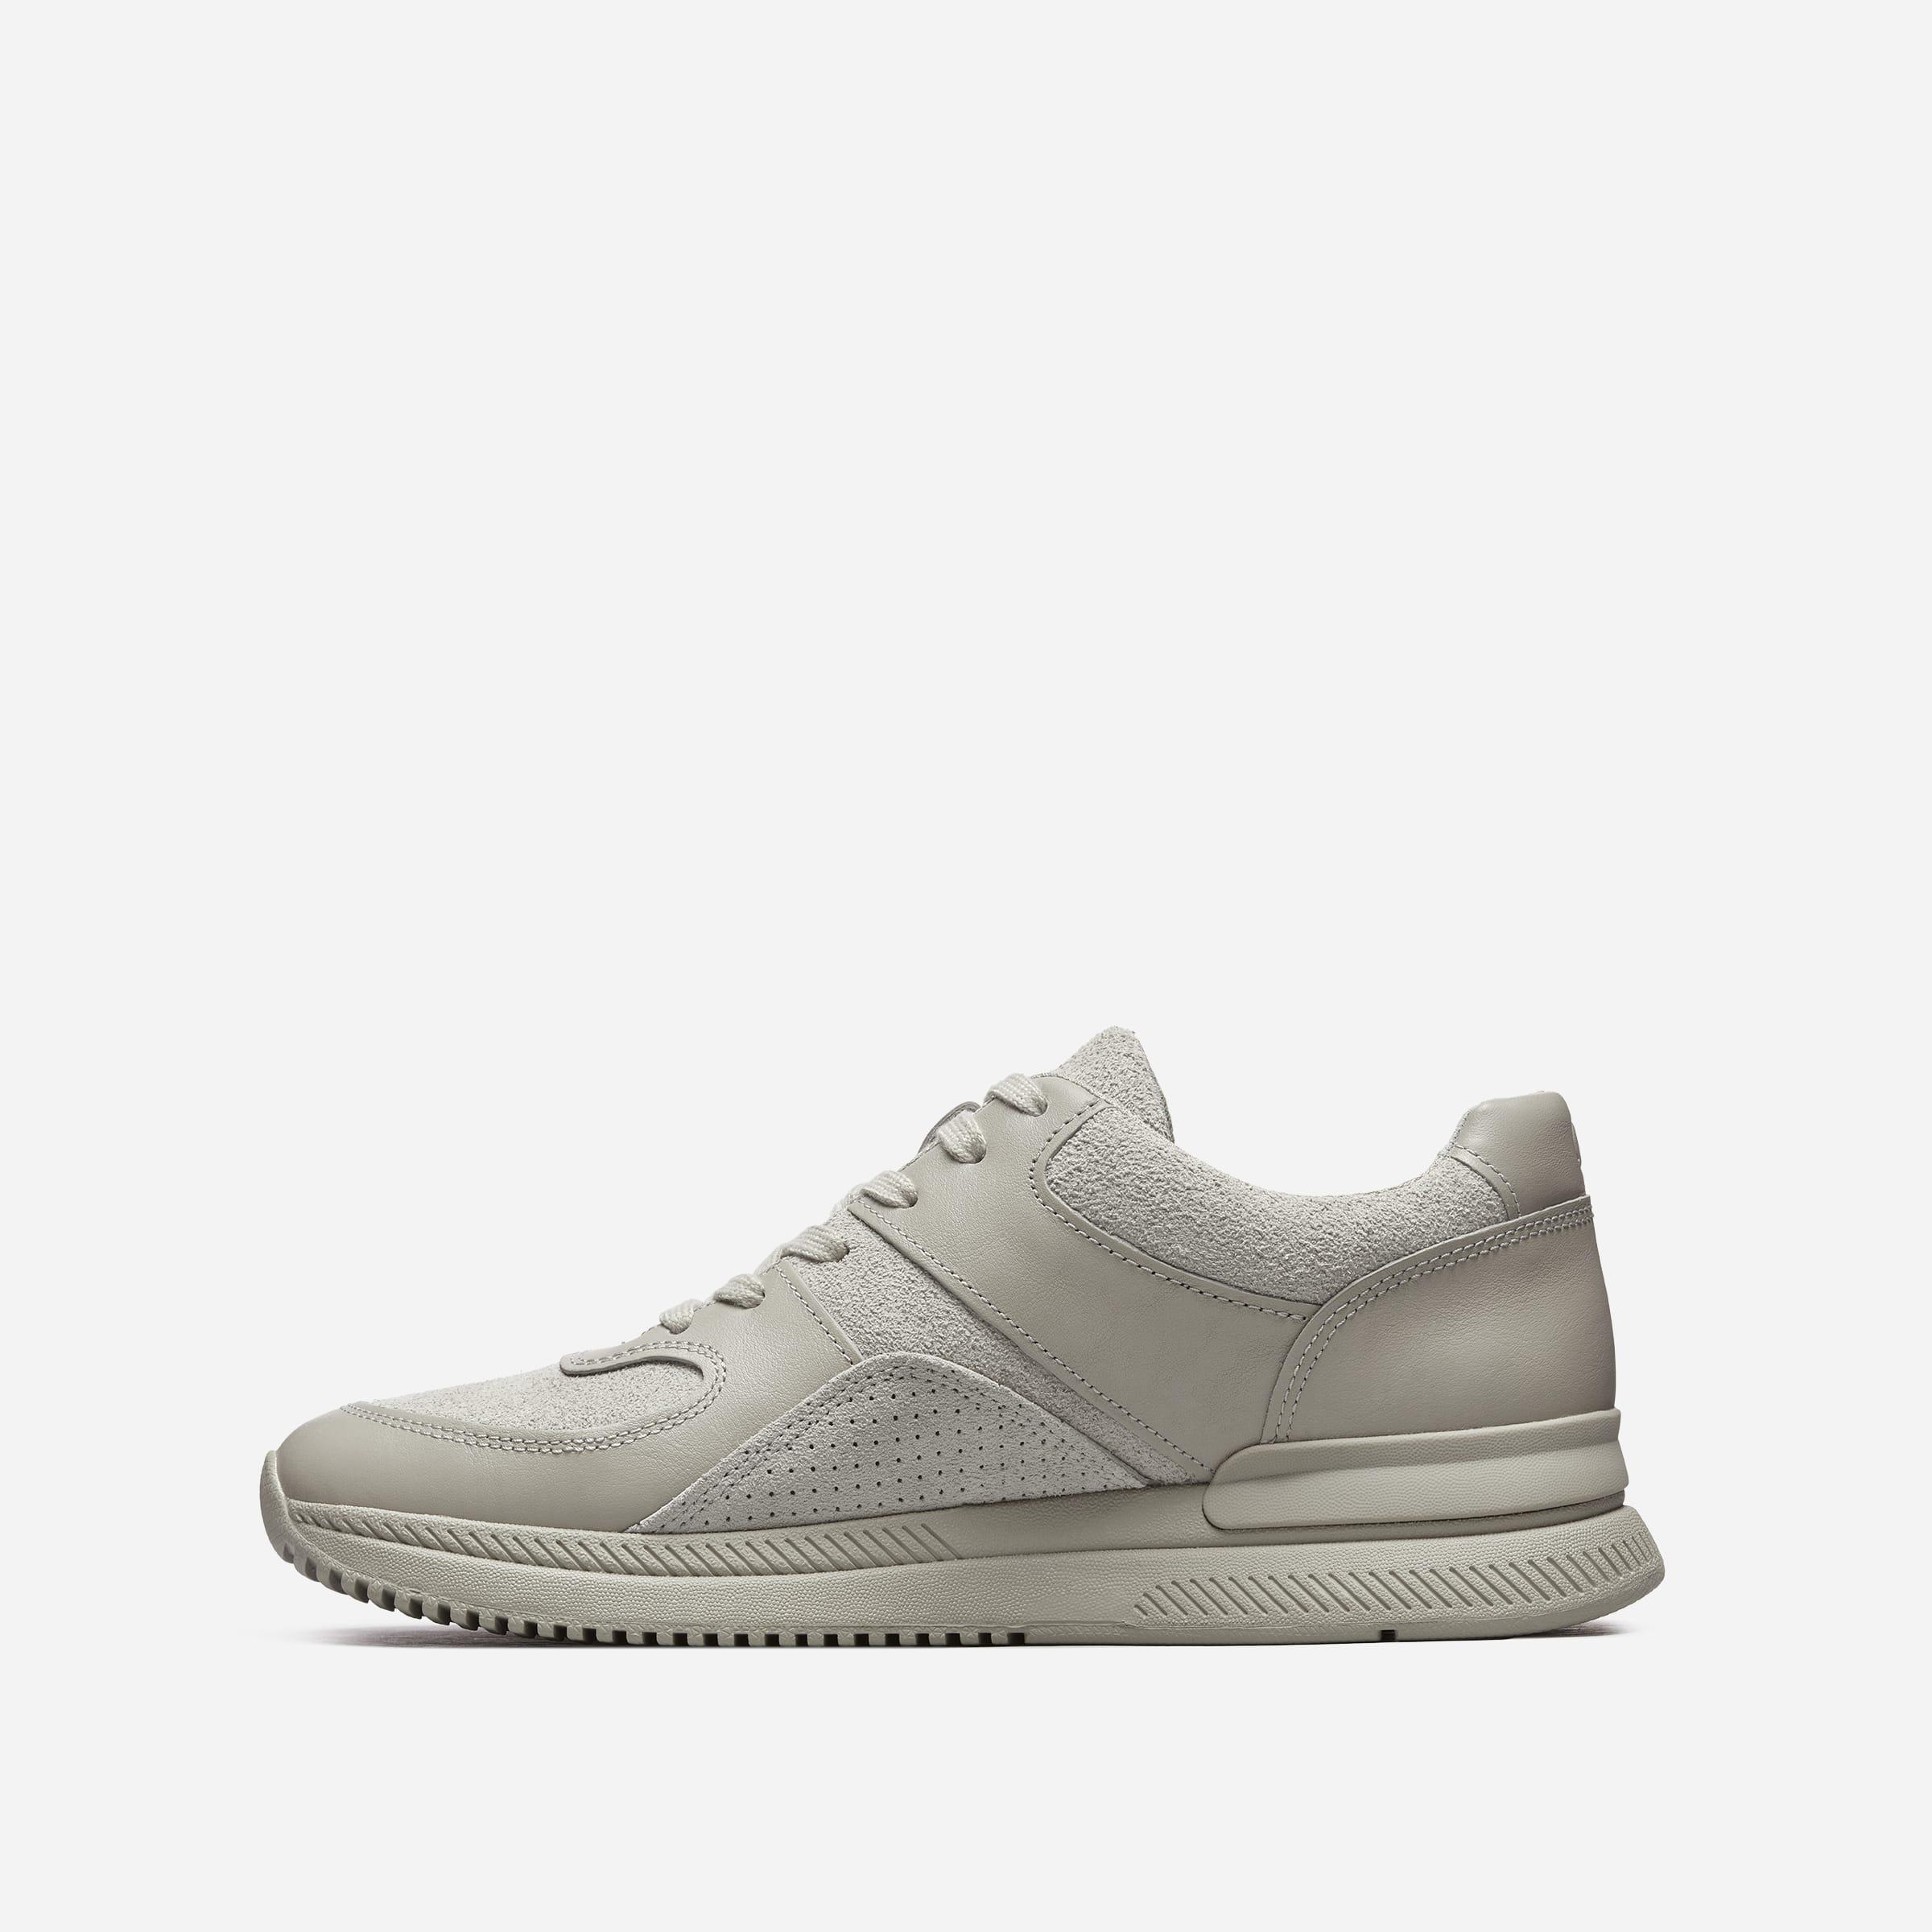 The Trainer 1